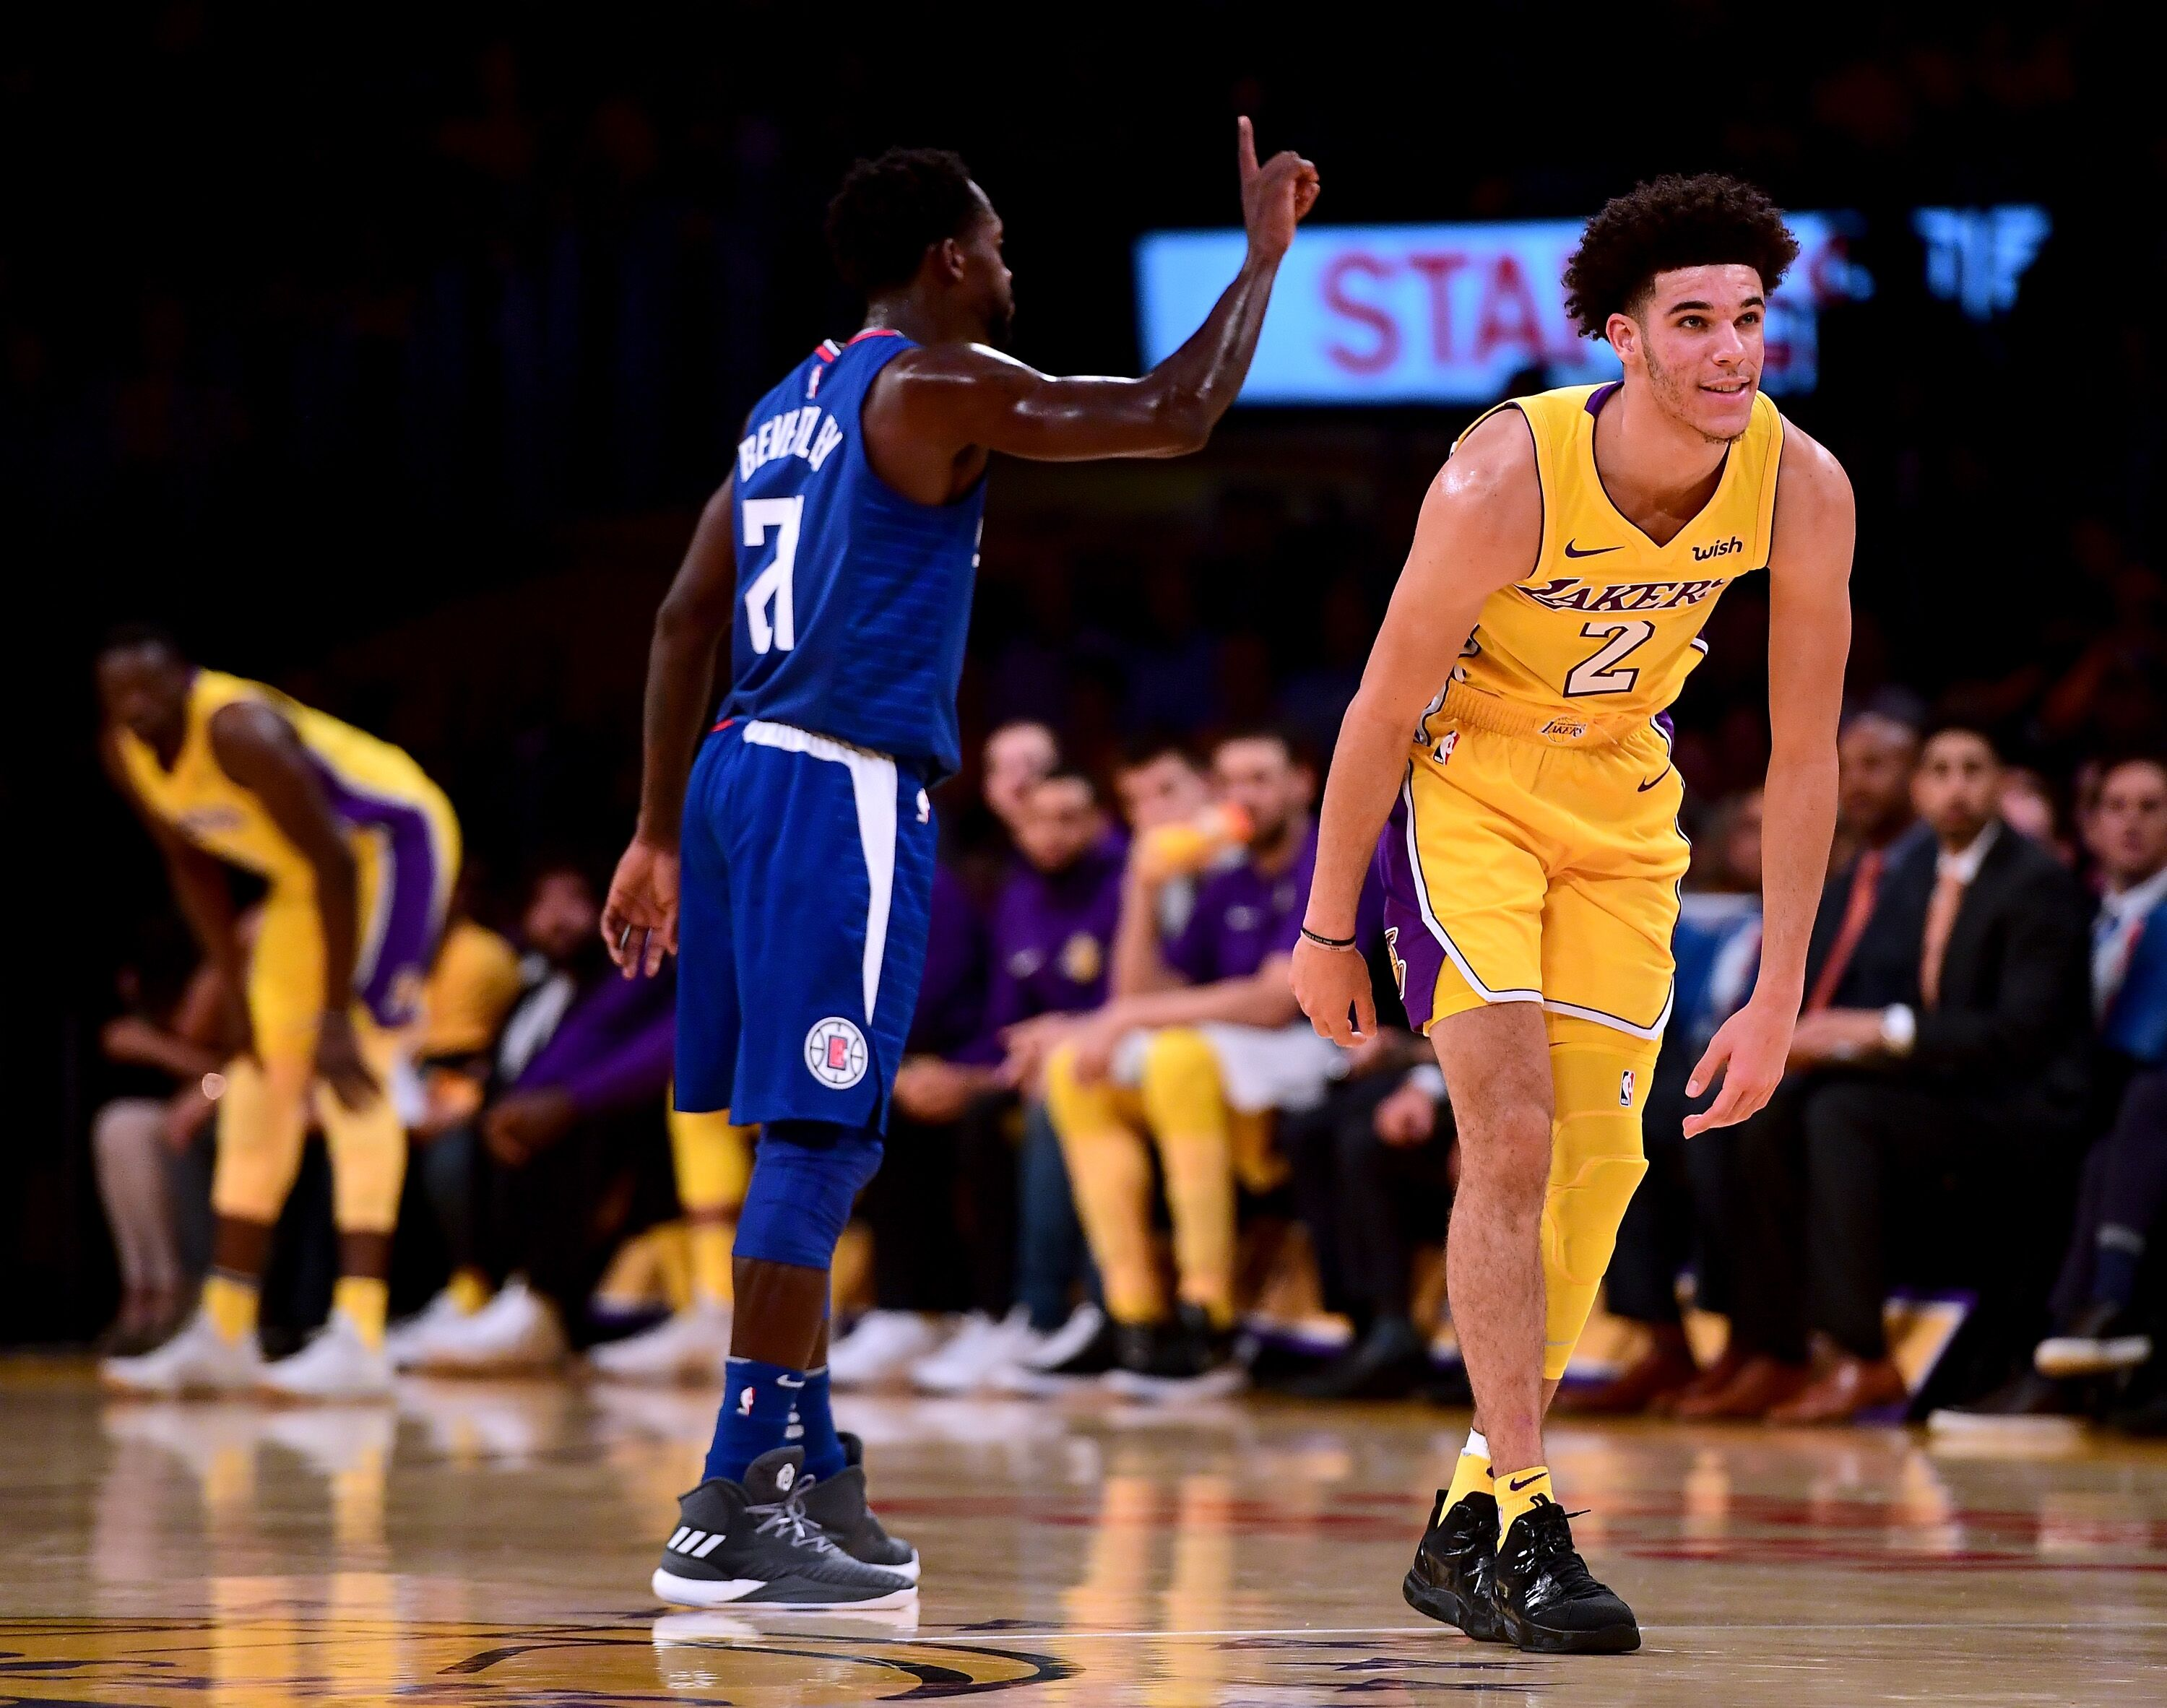 863367138-los-angeles-clippers-v-los-angeles-lakers.jpg